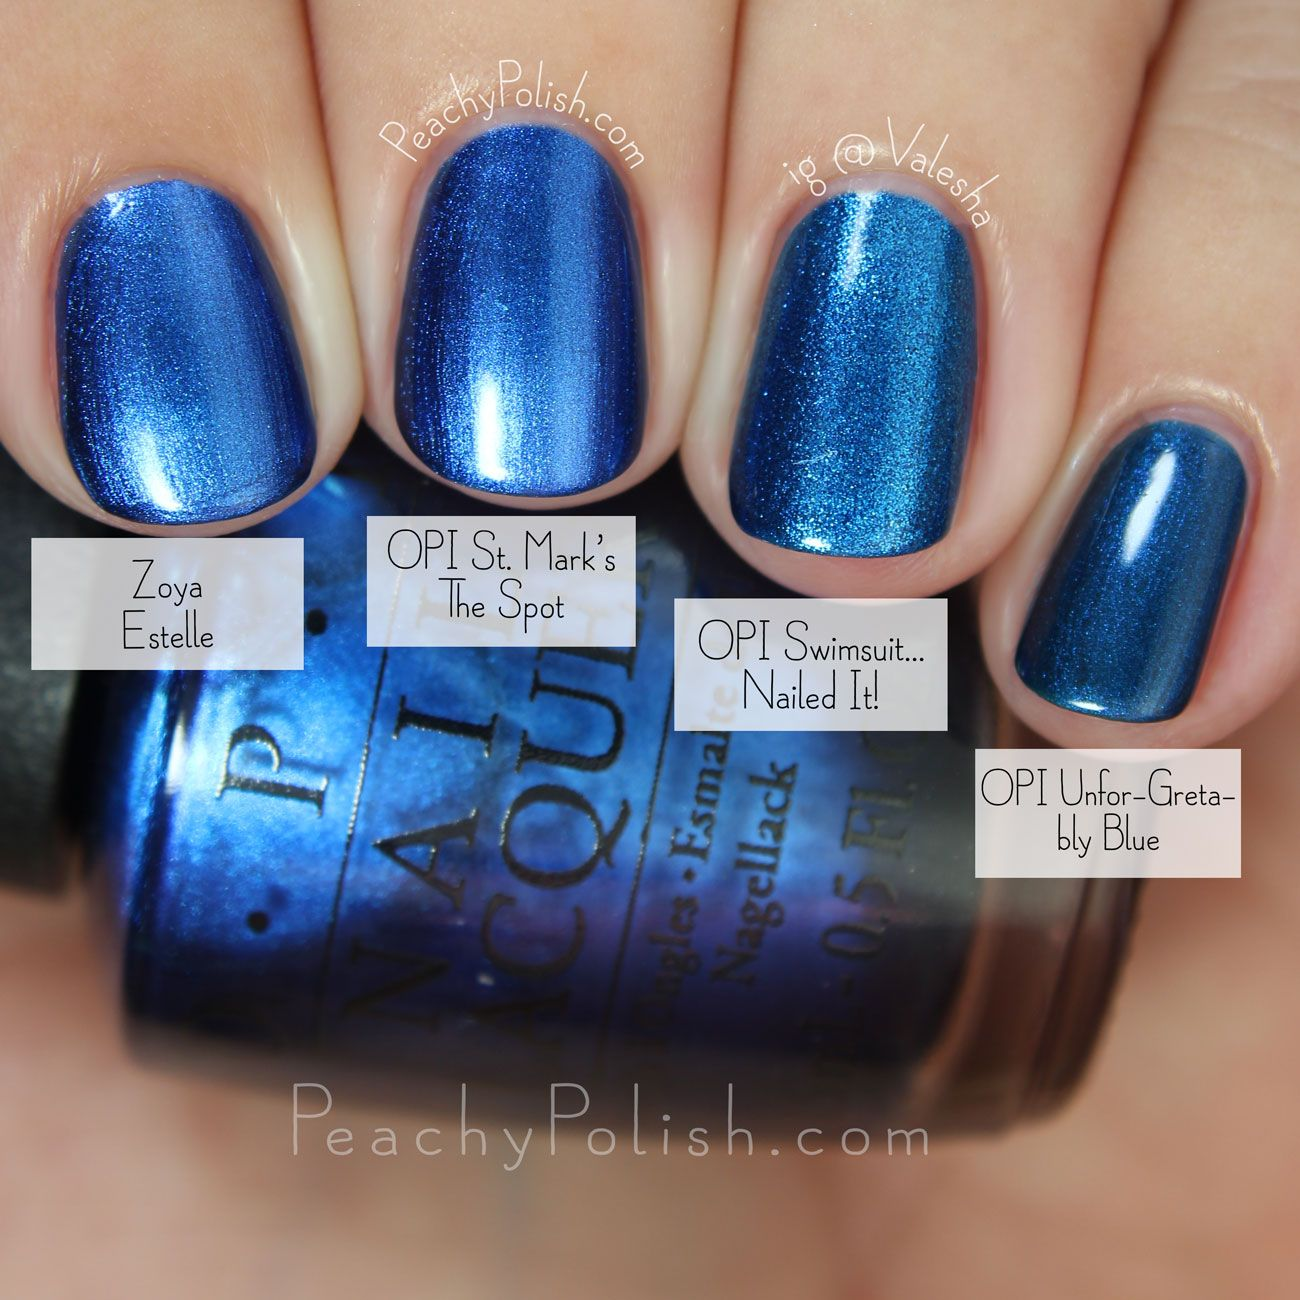 "OPI Venice Collection Comparison: Zoya ""Estelle"", OPI ""St"